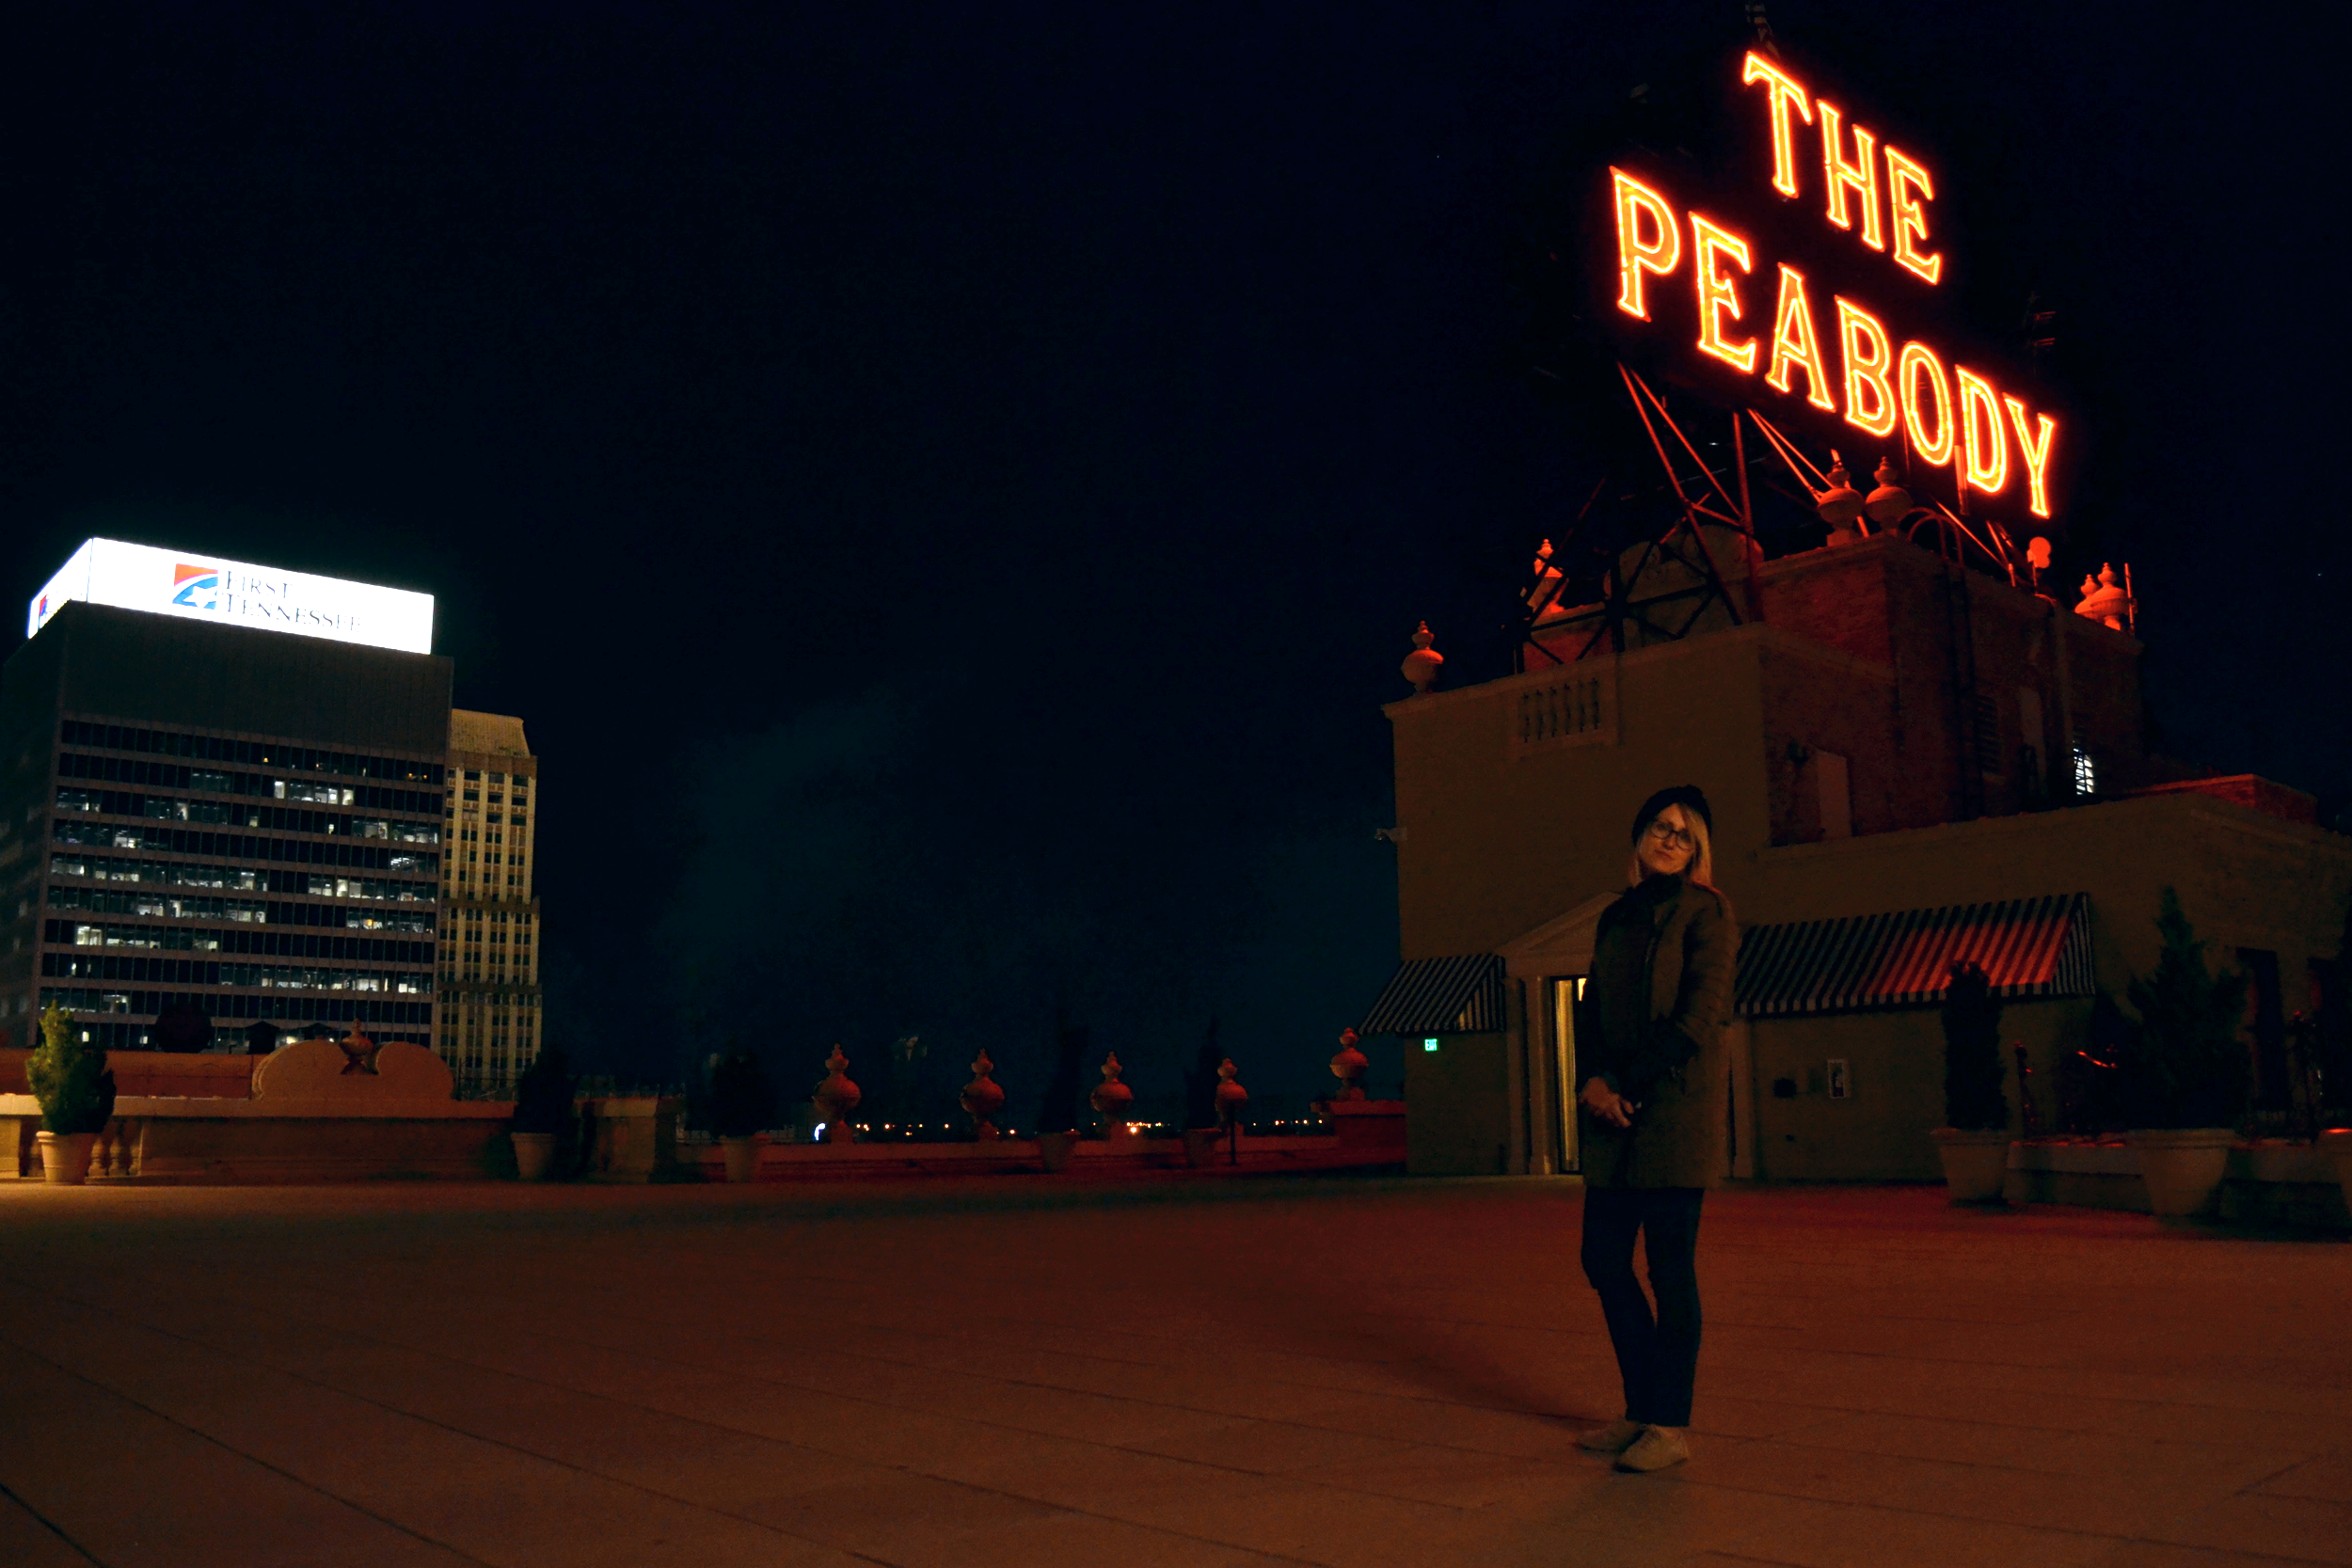 Mel basks in the neon glow of the Peabody Hotel rooftop.